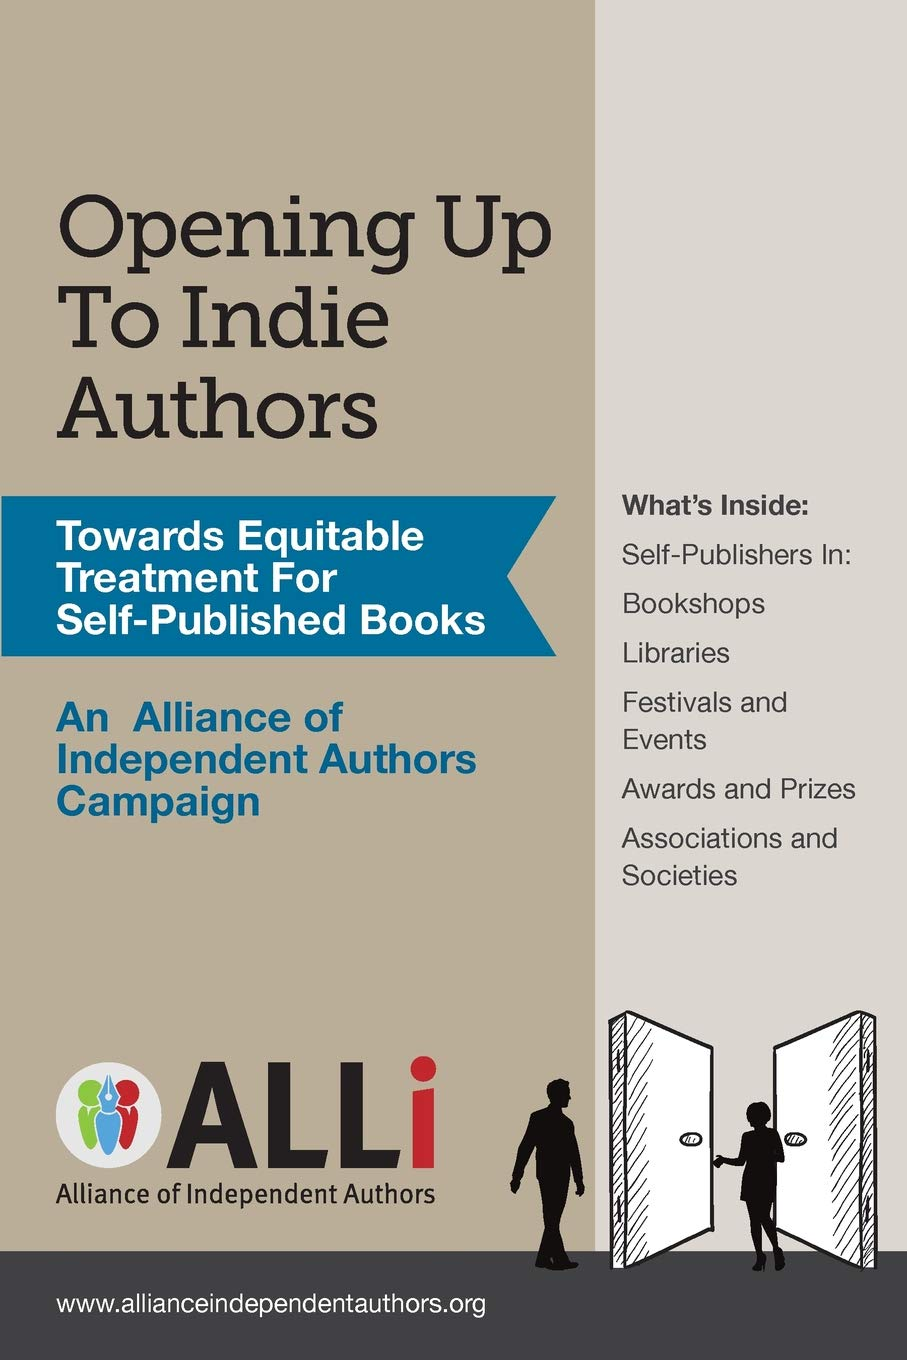 Opening Up To Indie Authors: A Guide for Bookstores